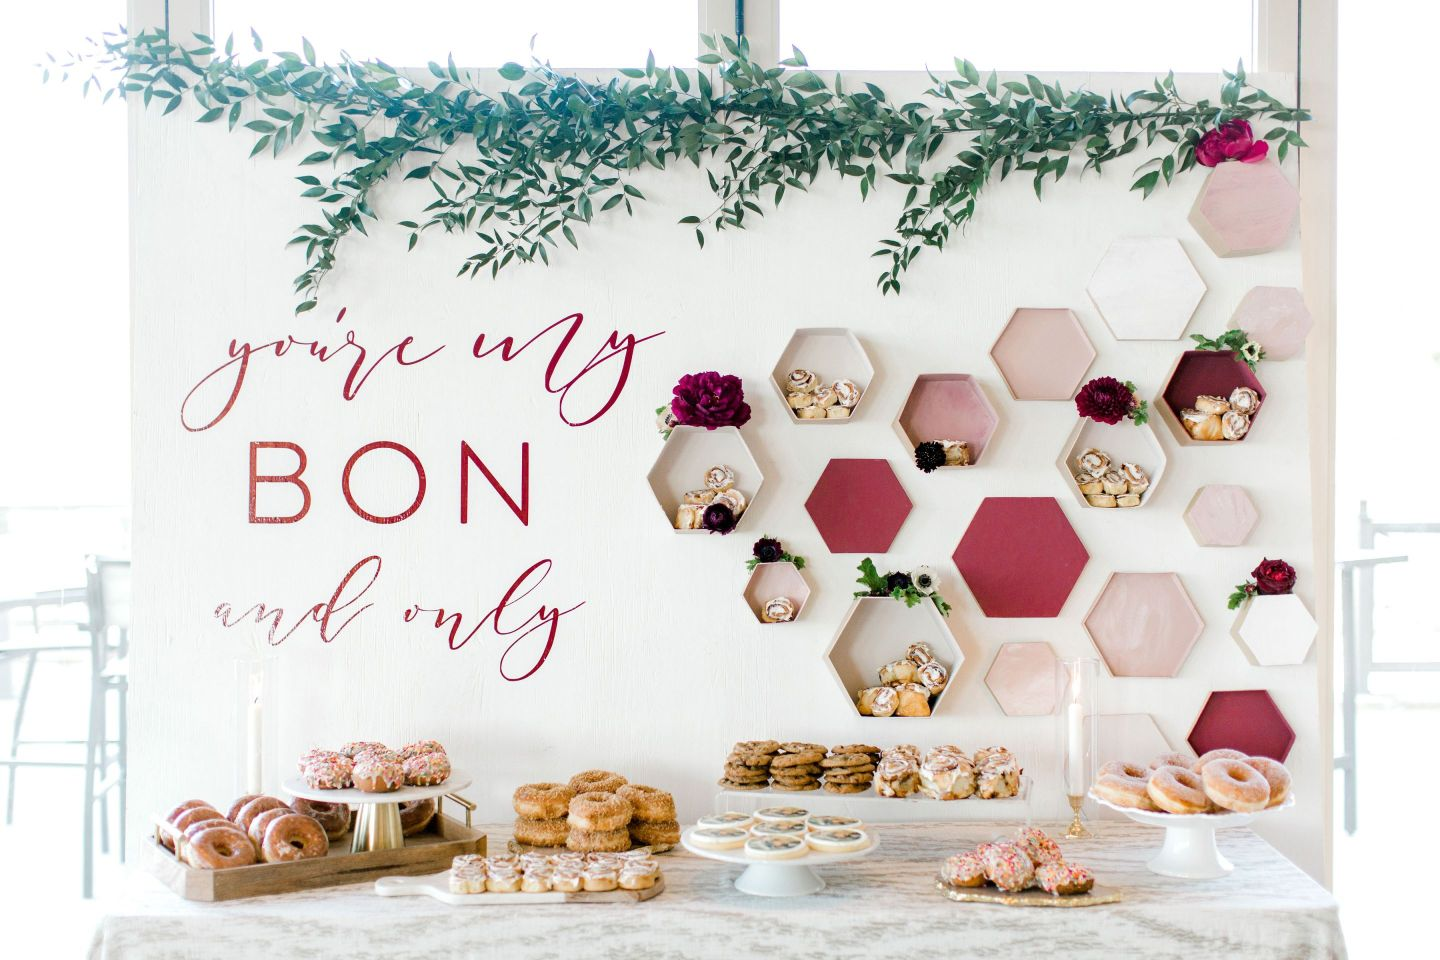 PineandSea_HuberWedding_ReceptionDetails-108-1-1440x960 Spring Wedding Inspiration: How to Host a Dessert Bar with Cinnabon